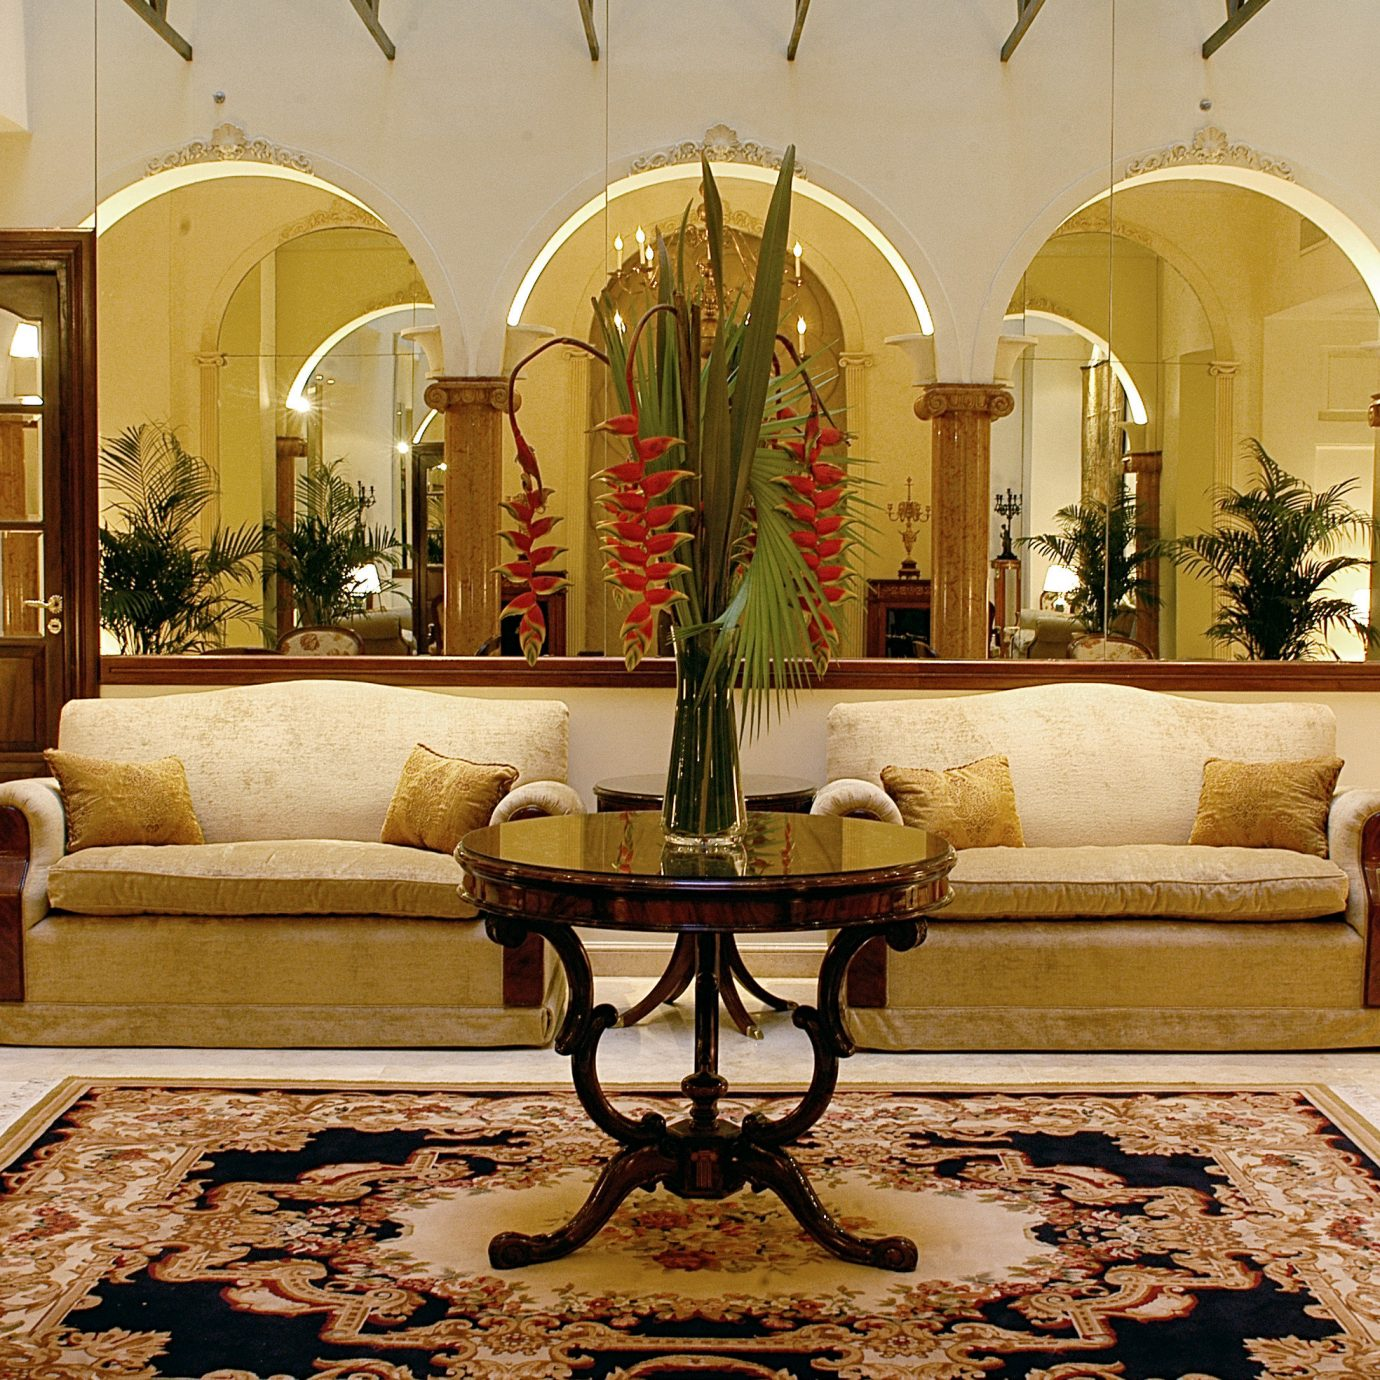 City Classic Cultural Lobby Lounge living room home mansion palace